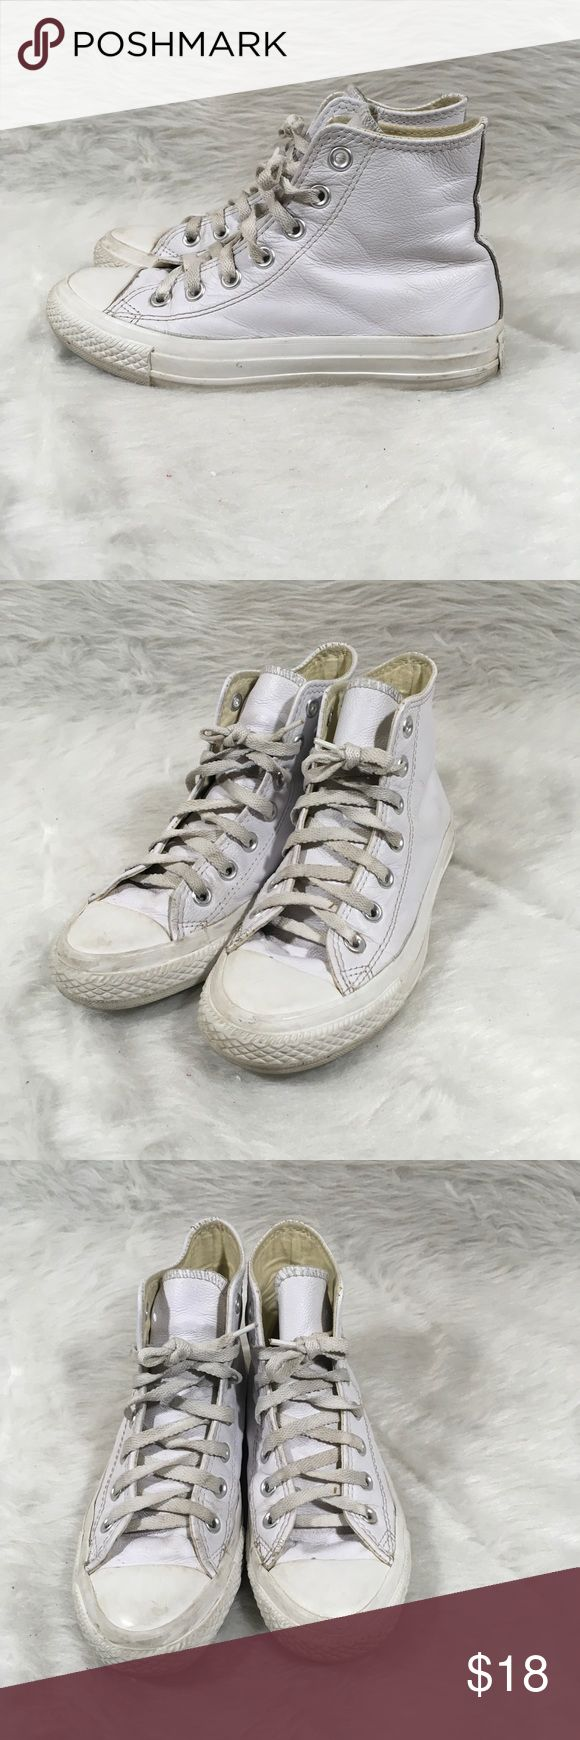 Converse White Leather Chuck Taylor Hi-Tops Converse 1T406 White Leather Chuck Taylor Hi-Tops Mens Sz 4 Women's 6  Size- Men's 4 Women's 6  Condition-Has some signs of wear, see pictures. Converse Shoes Sneakers